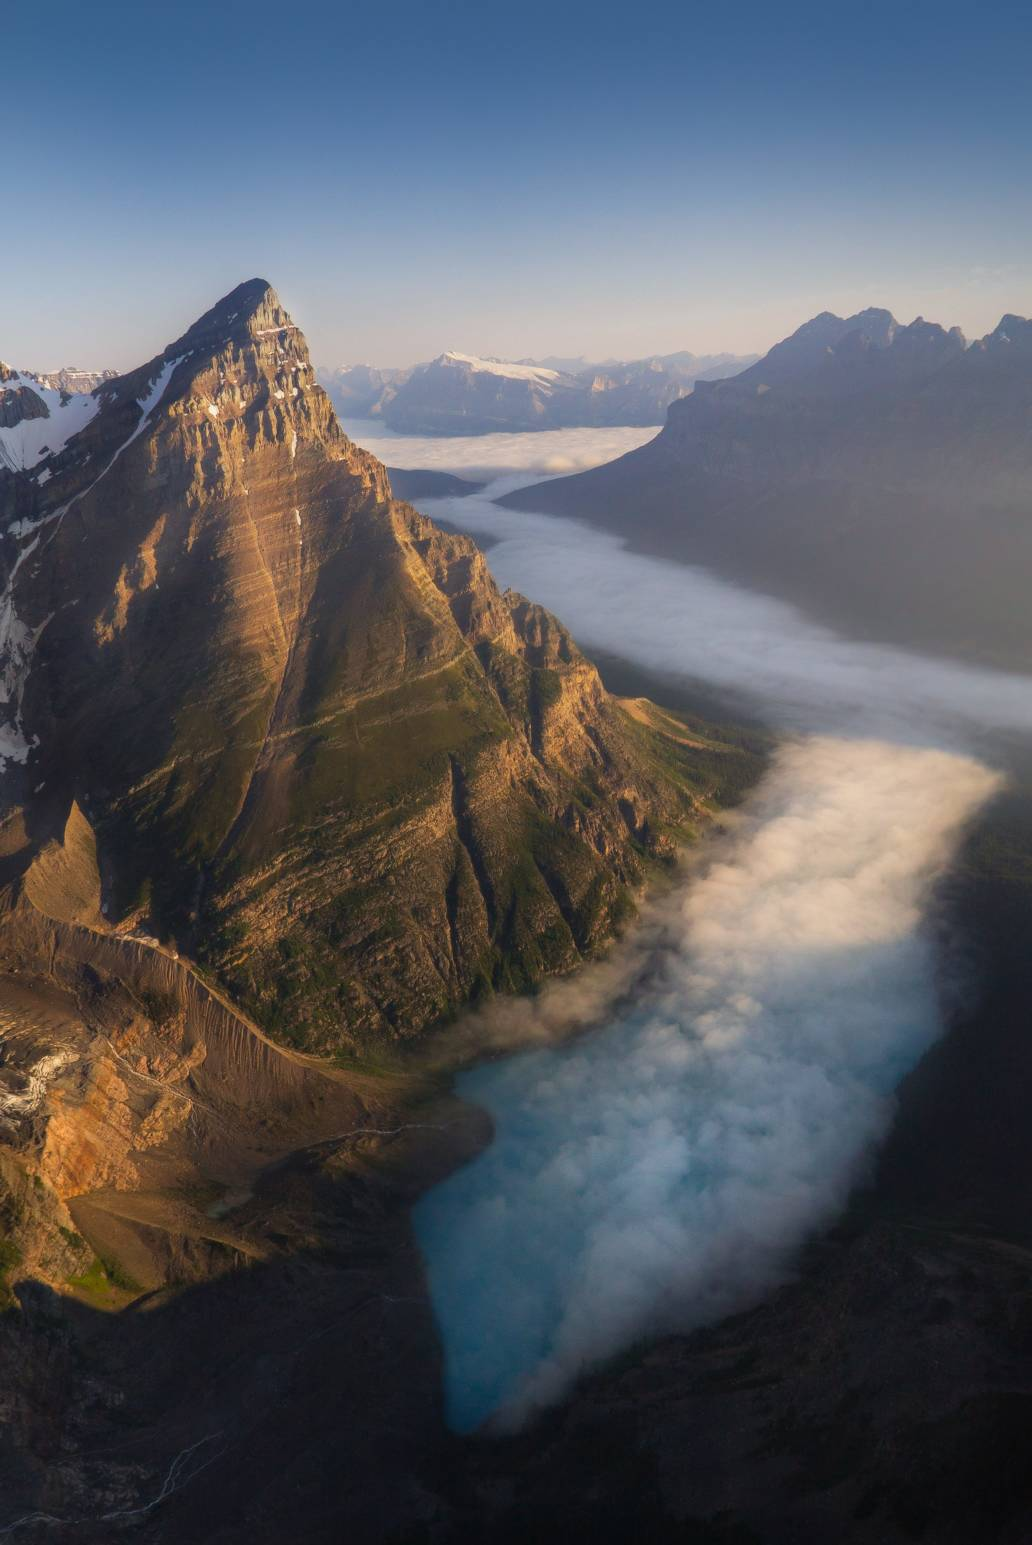 Aerial photography of a mountain during sunrise in Banff National Park, Canada. Taken from a helicopter